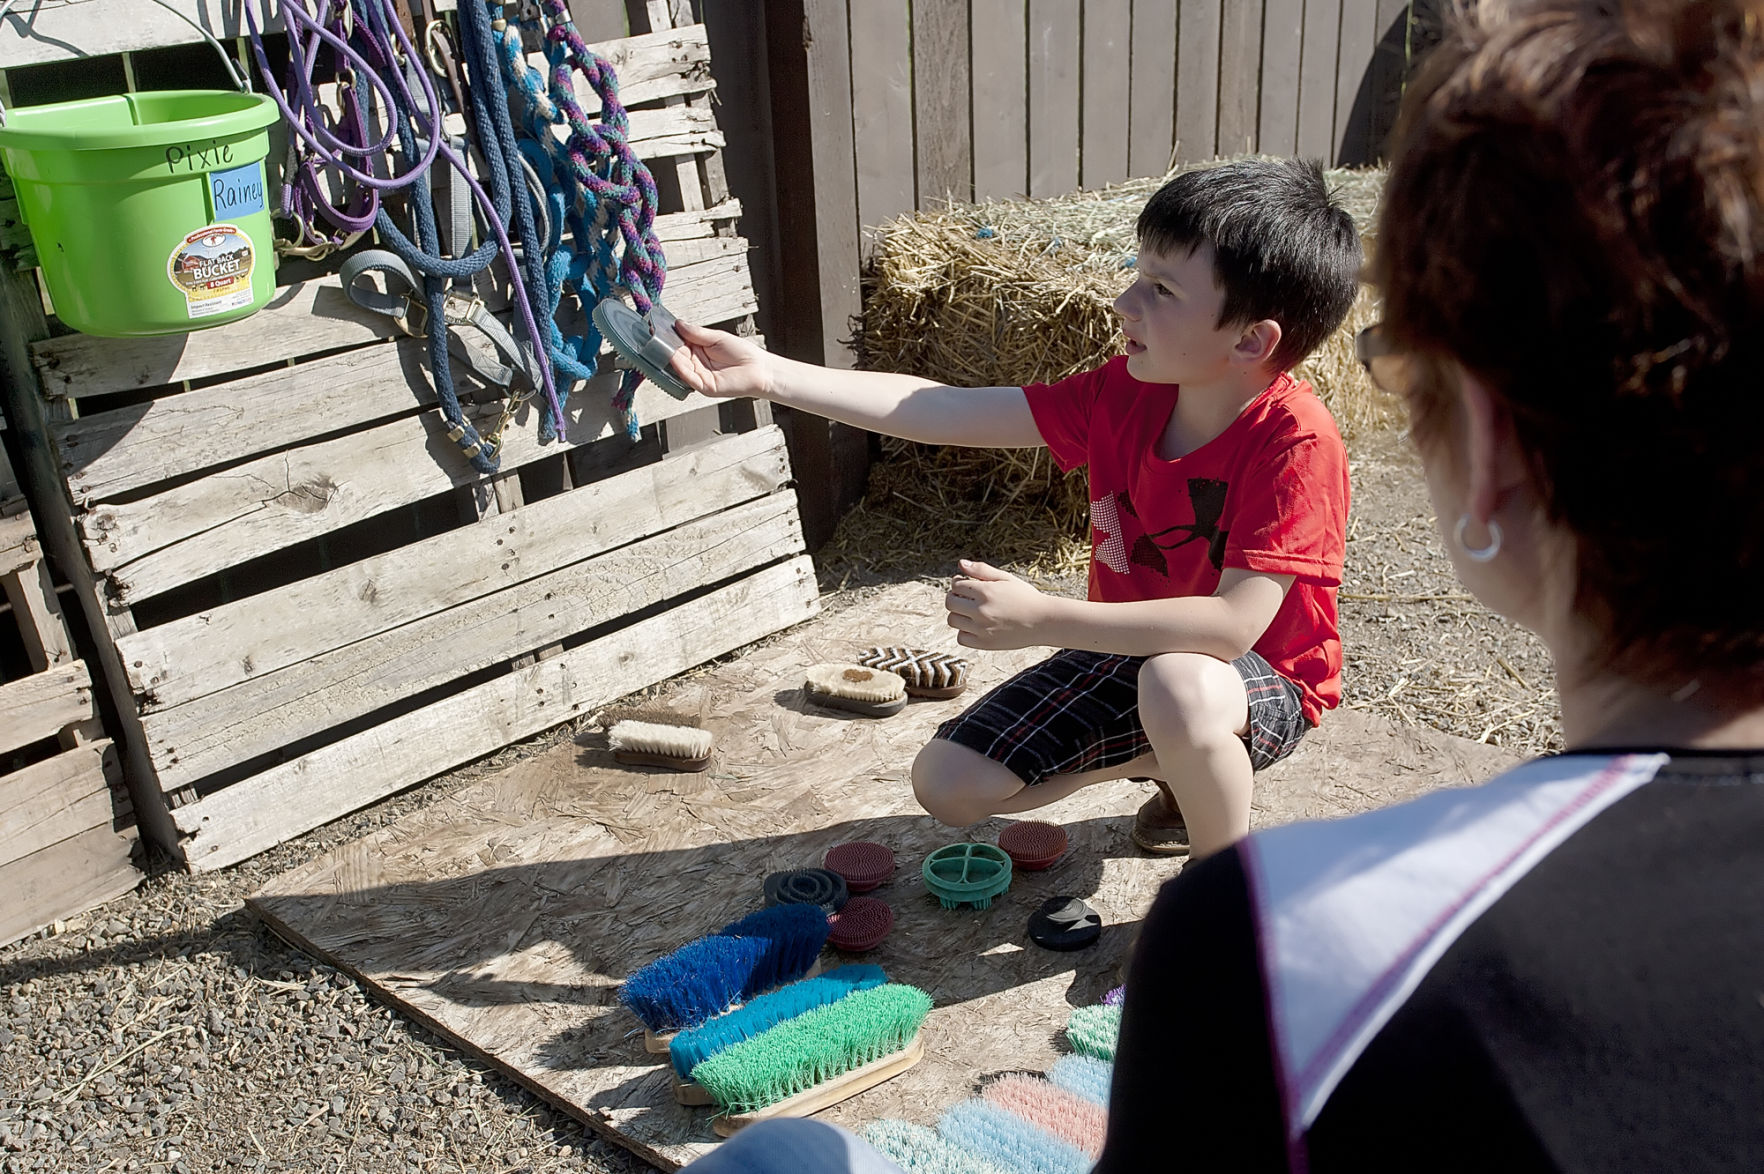 Shadow Wing Ranch teaches kids life skills